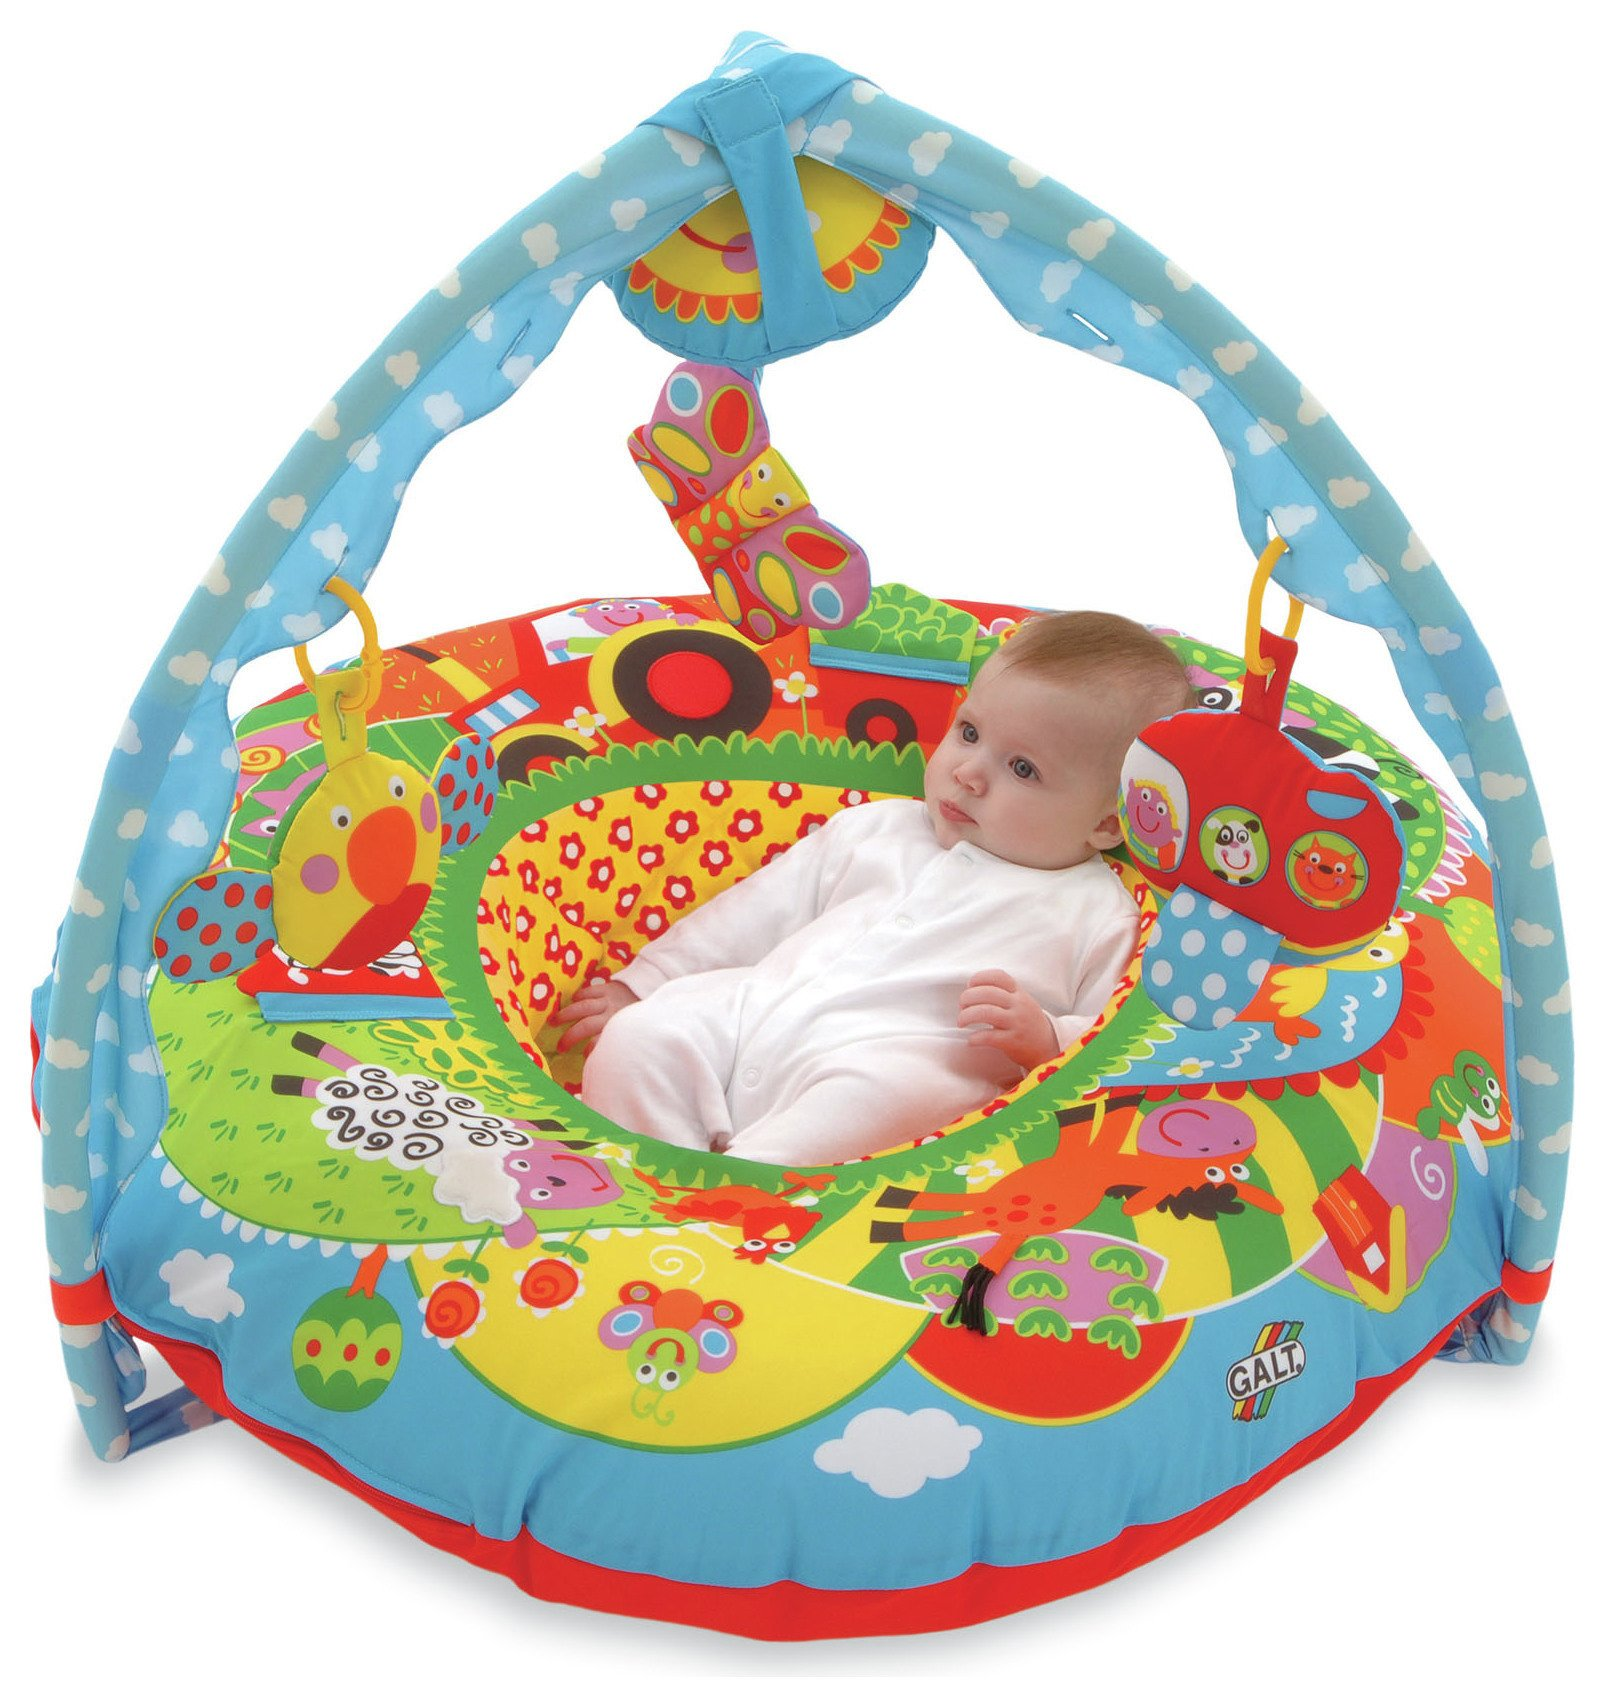 Gym Mats Argos: Bruin Baby Play Gym And Mat – Toys For Christmas